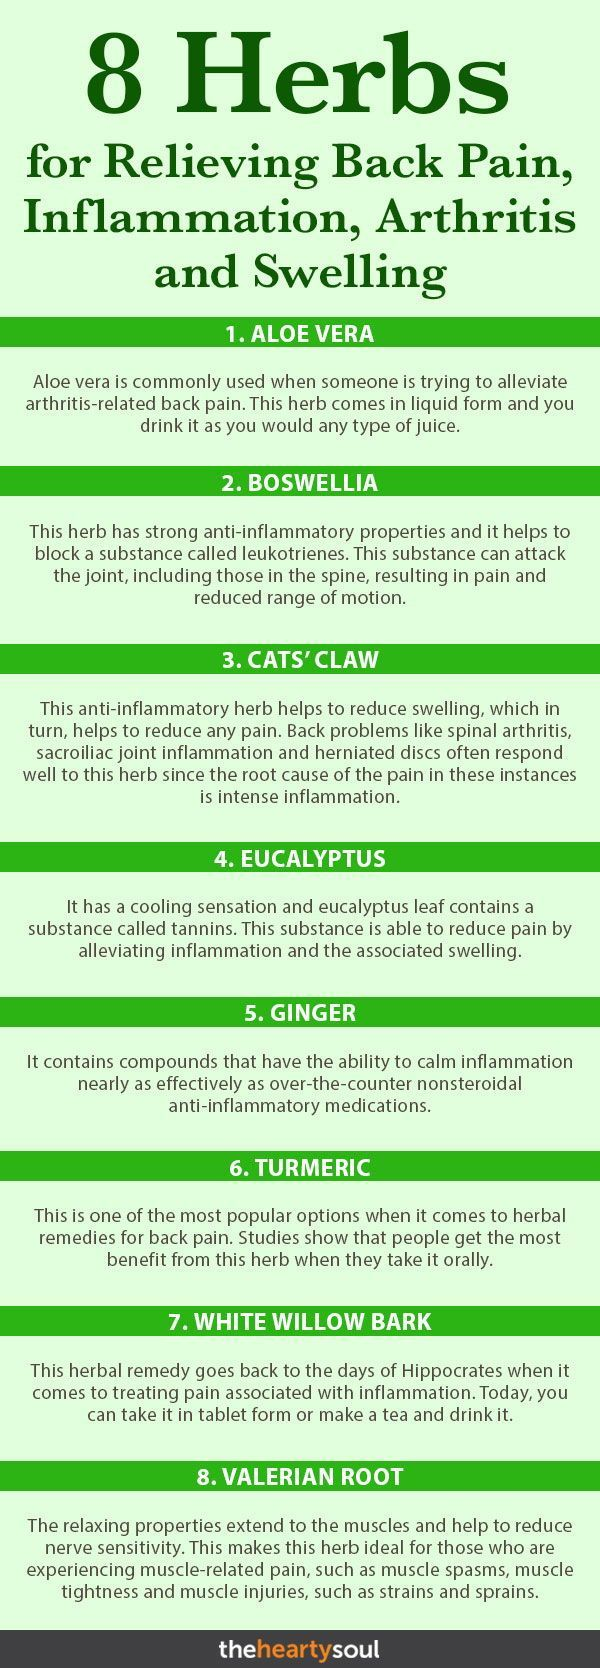 8 Herbs for Relieving Back Pain, Inflammation, Arthritis and